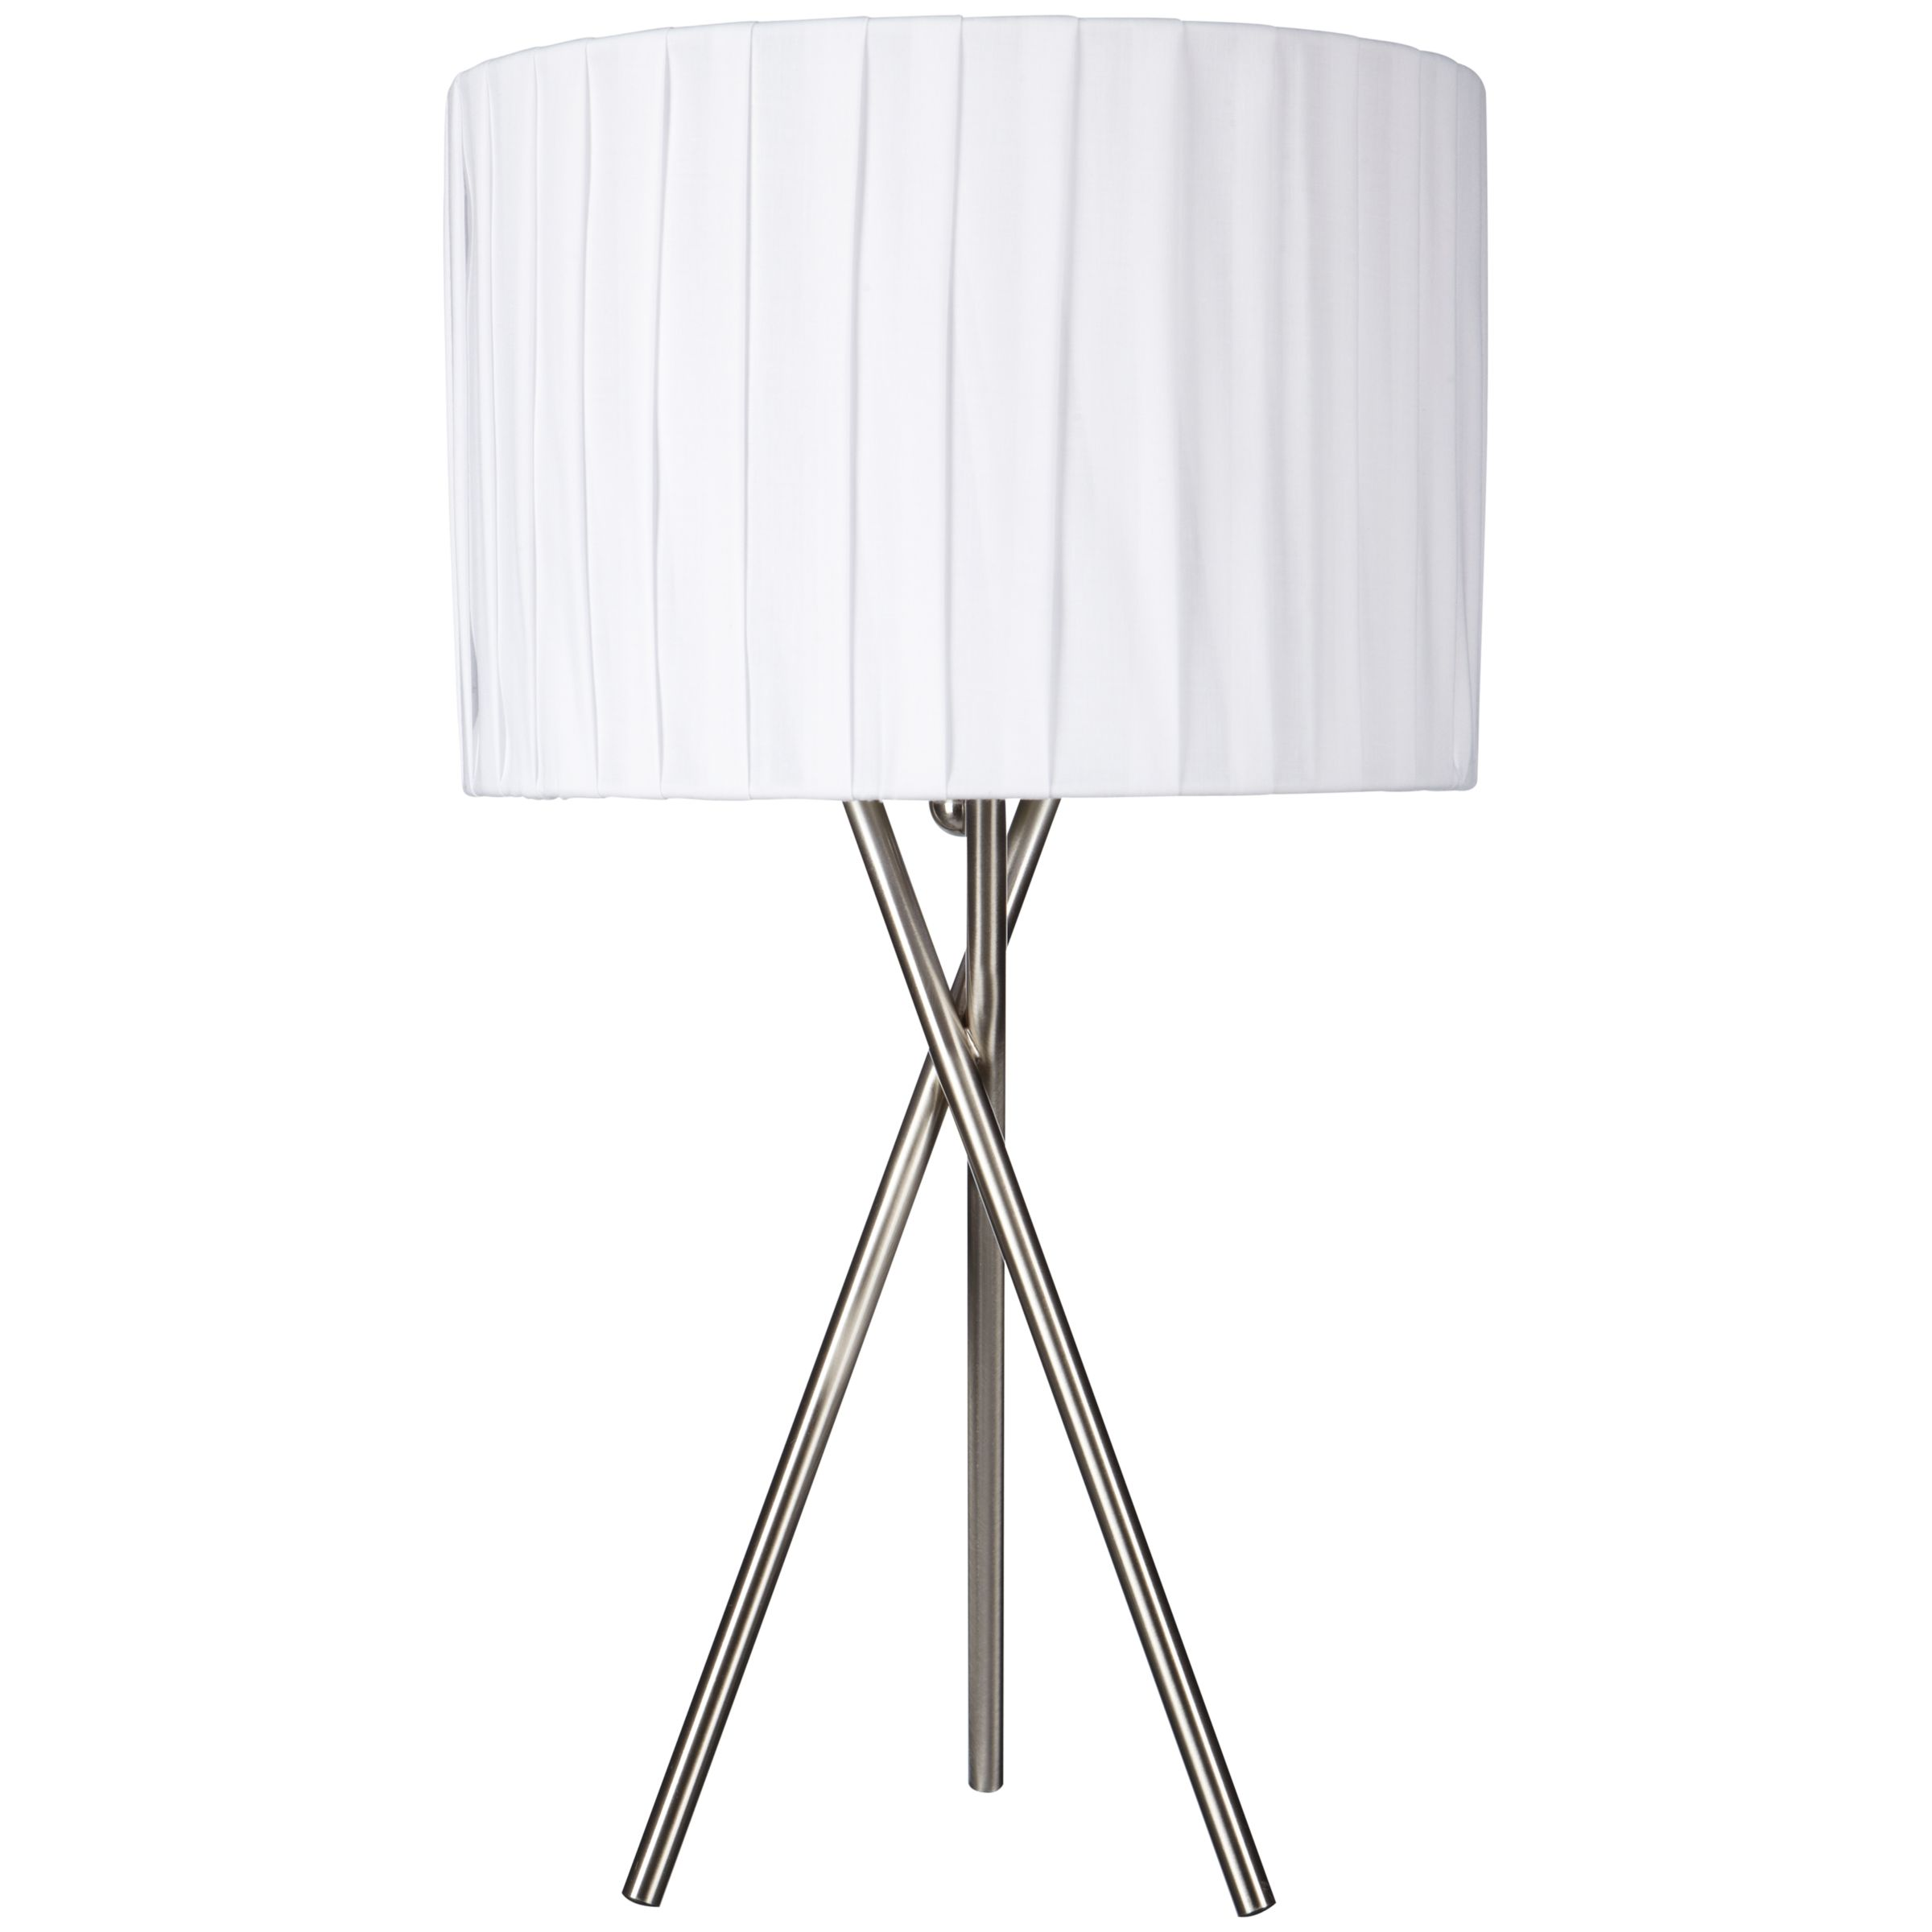 John lewis malia table lamp white review compare for Table lamp shades john lewis